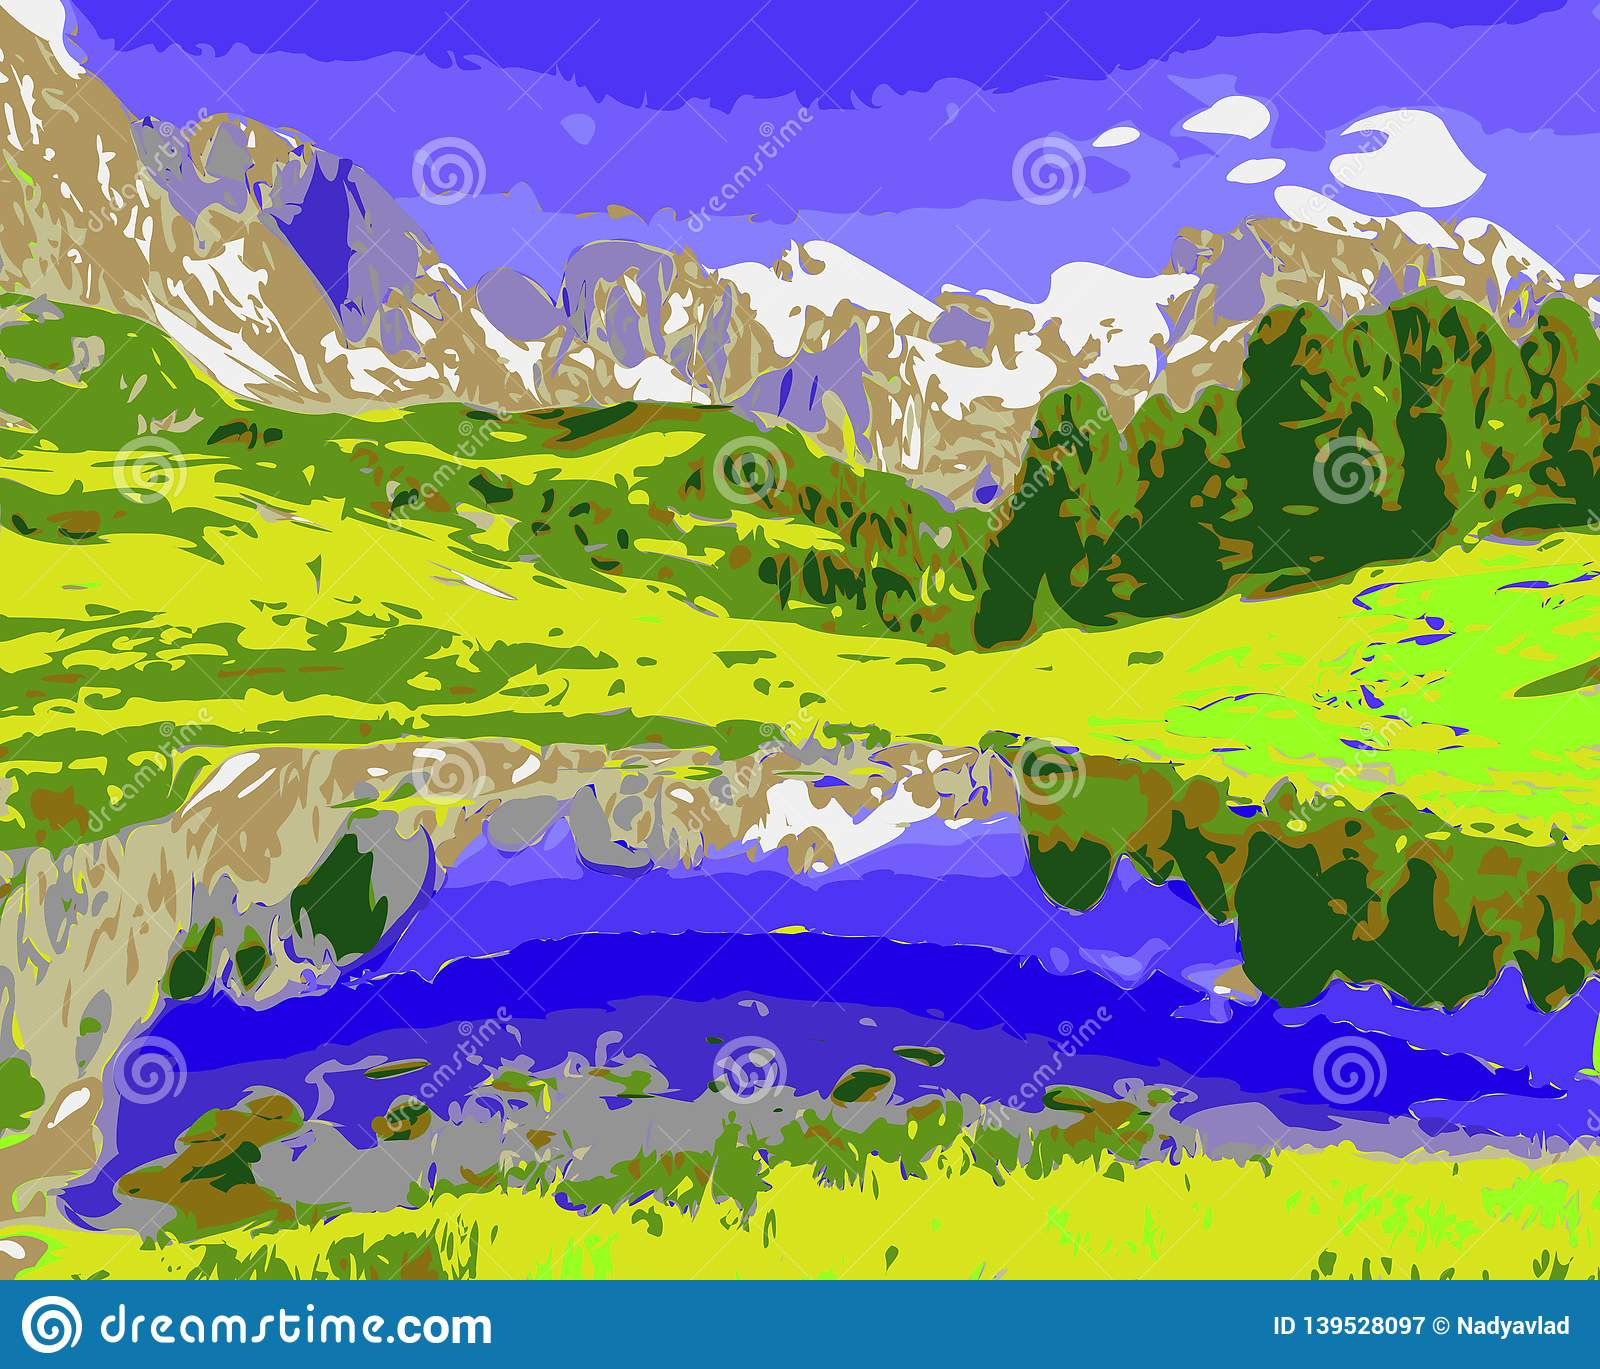 Medicinal herbs, fungi, edible fruits and nuts, and other natural products from the forest|rebecca j mclain enough, you can get 3 extracts from previous papers produced by this author. Vector Drawing Mountains Forest Lake Stock Vector Illustration Of Nature Products 139528097